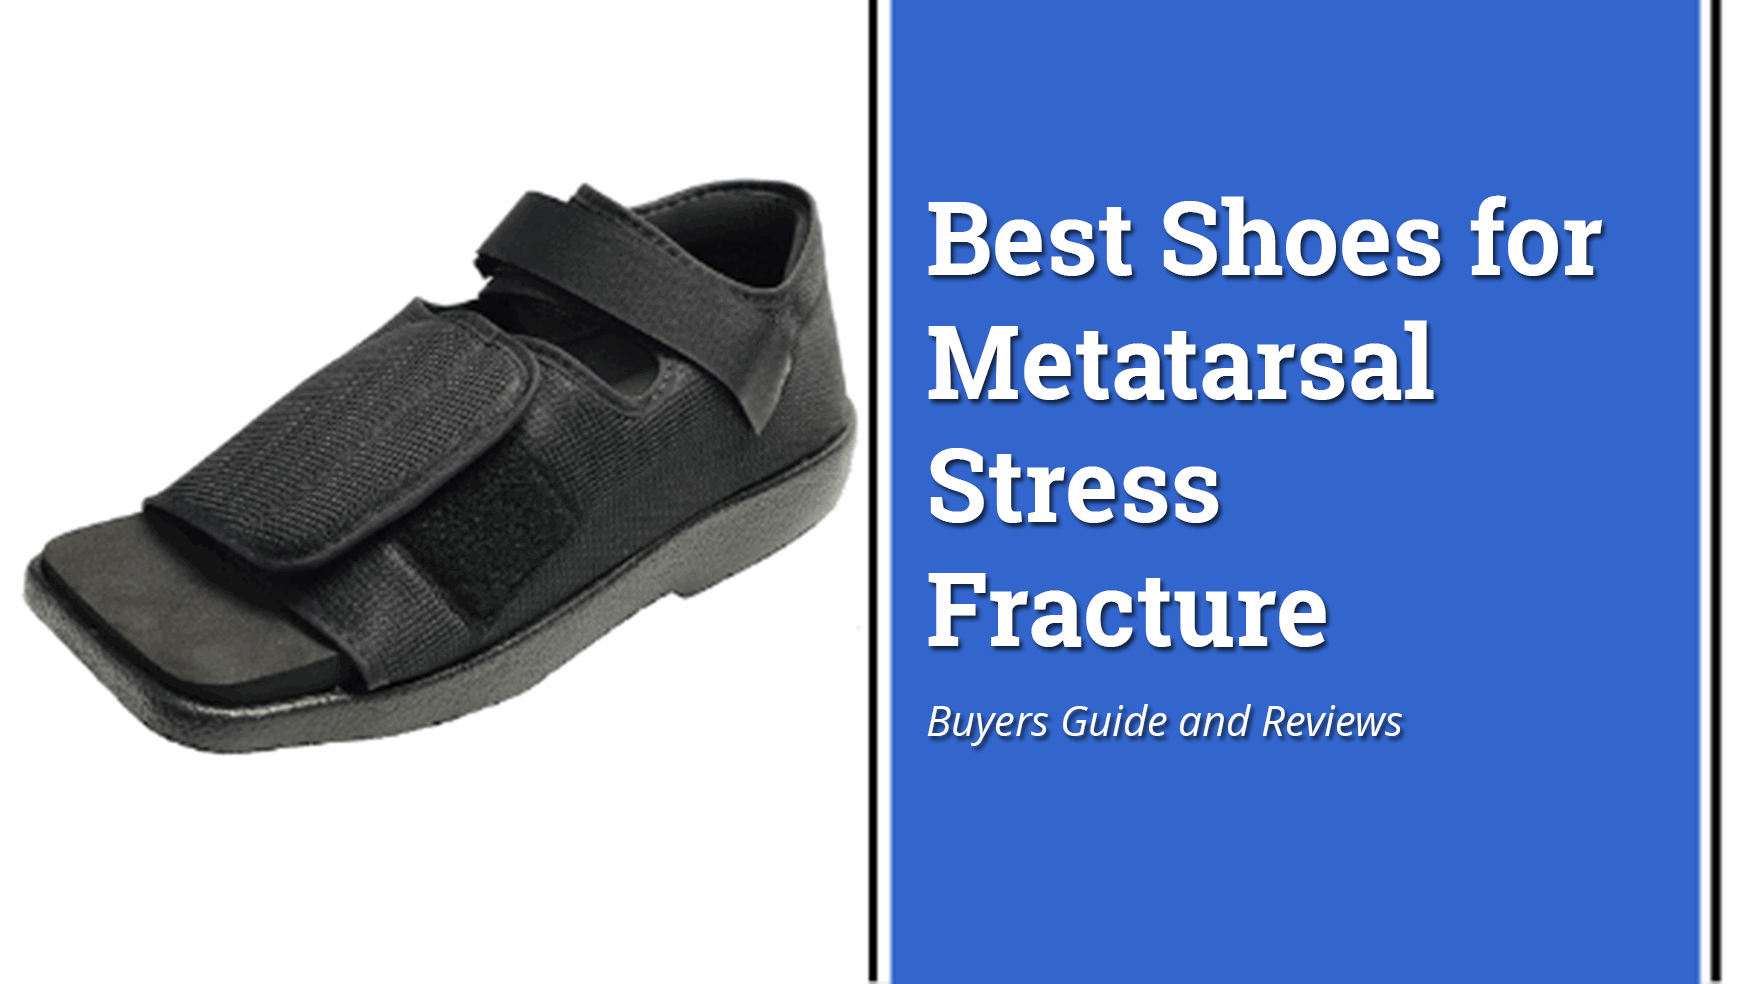 best-shoes-for-metatarsal-stress-fracture